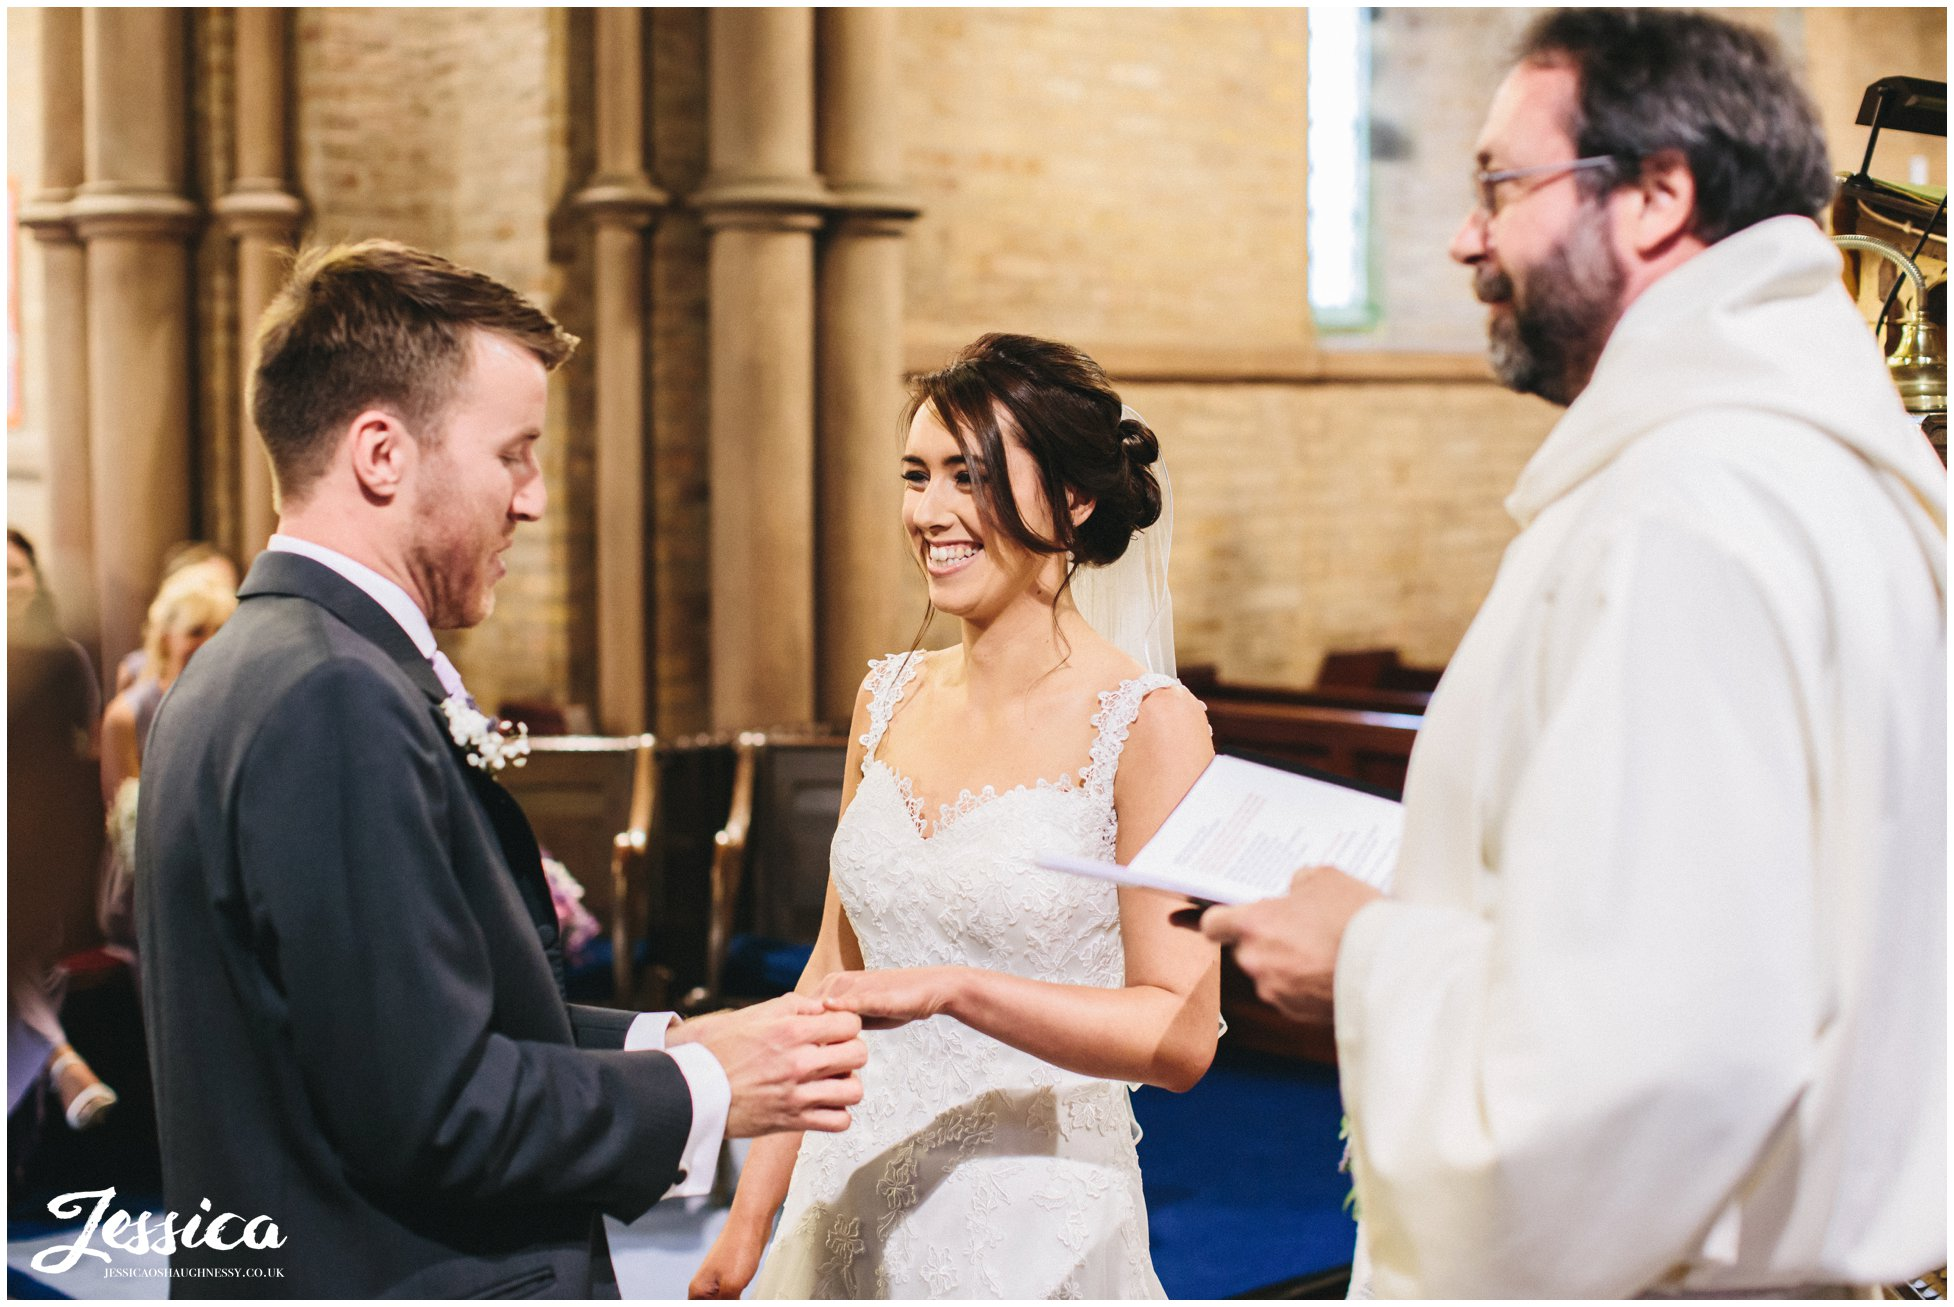 bride & groom exchange rings in St Bridget's church in Bridekirk, Cumbria wedding photographer